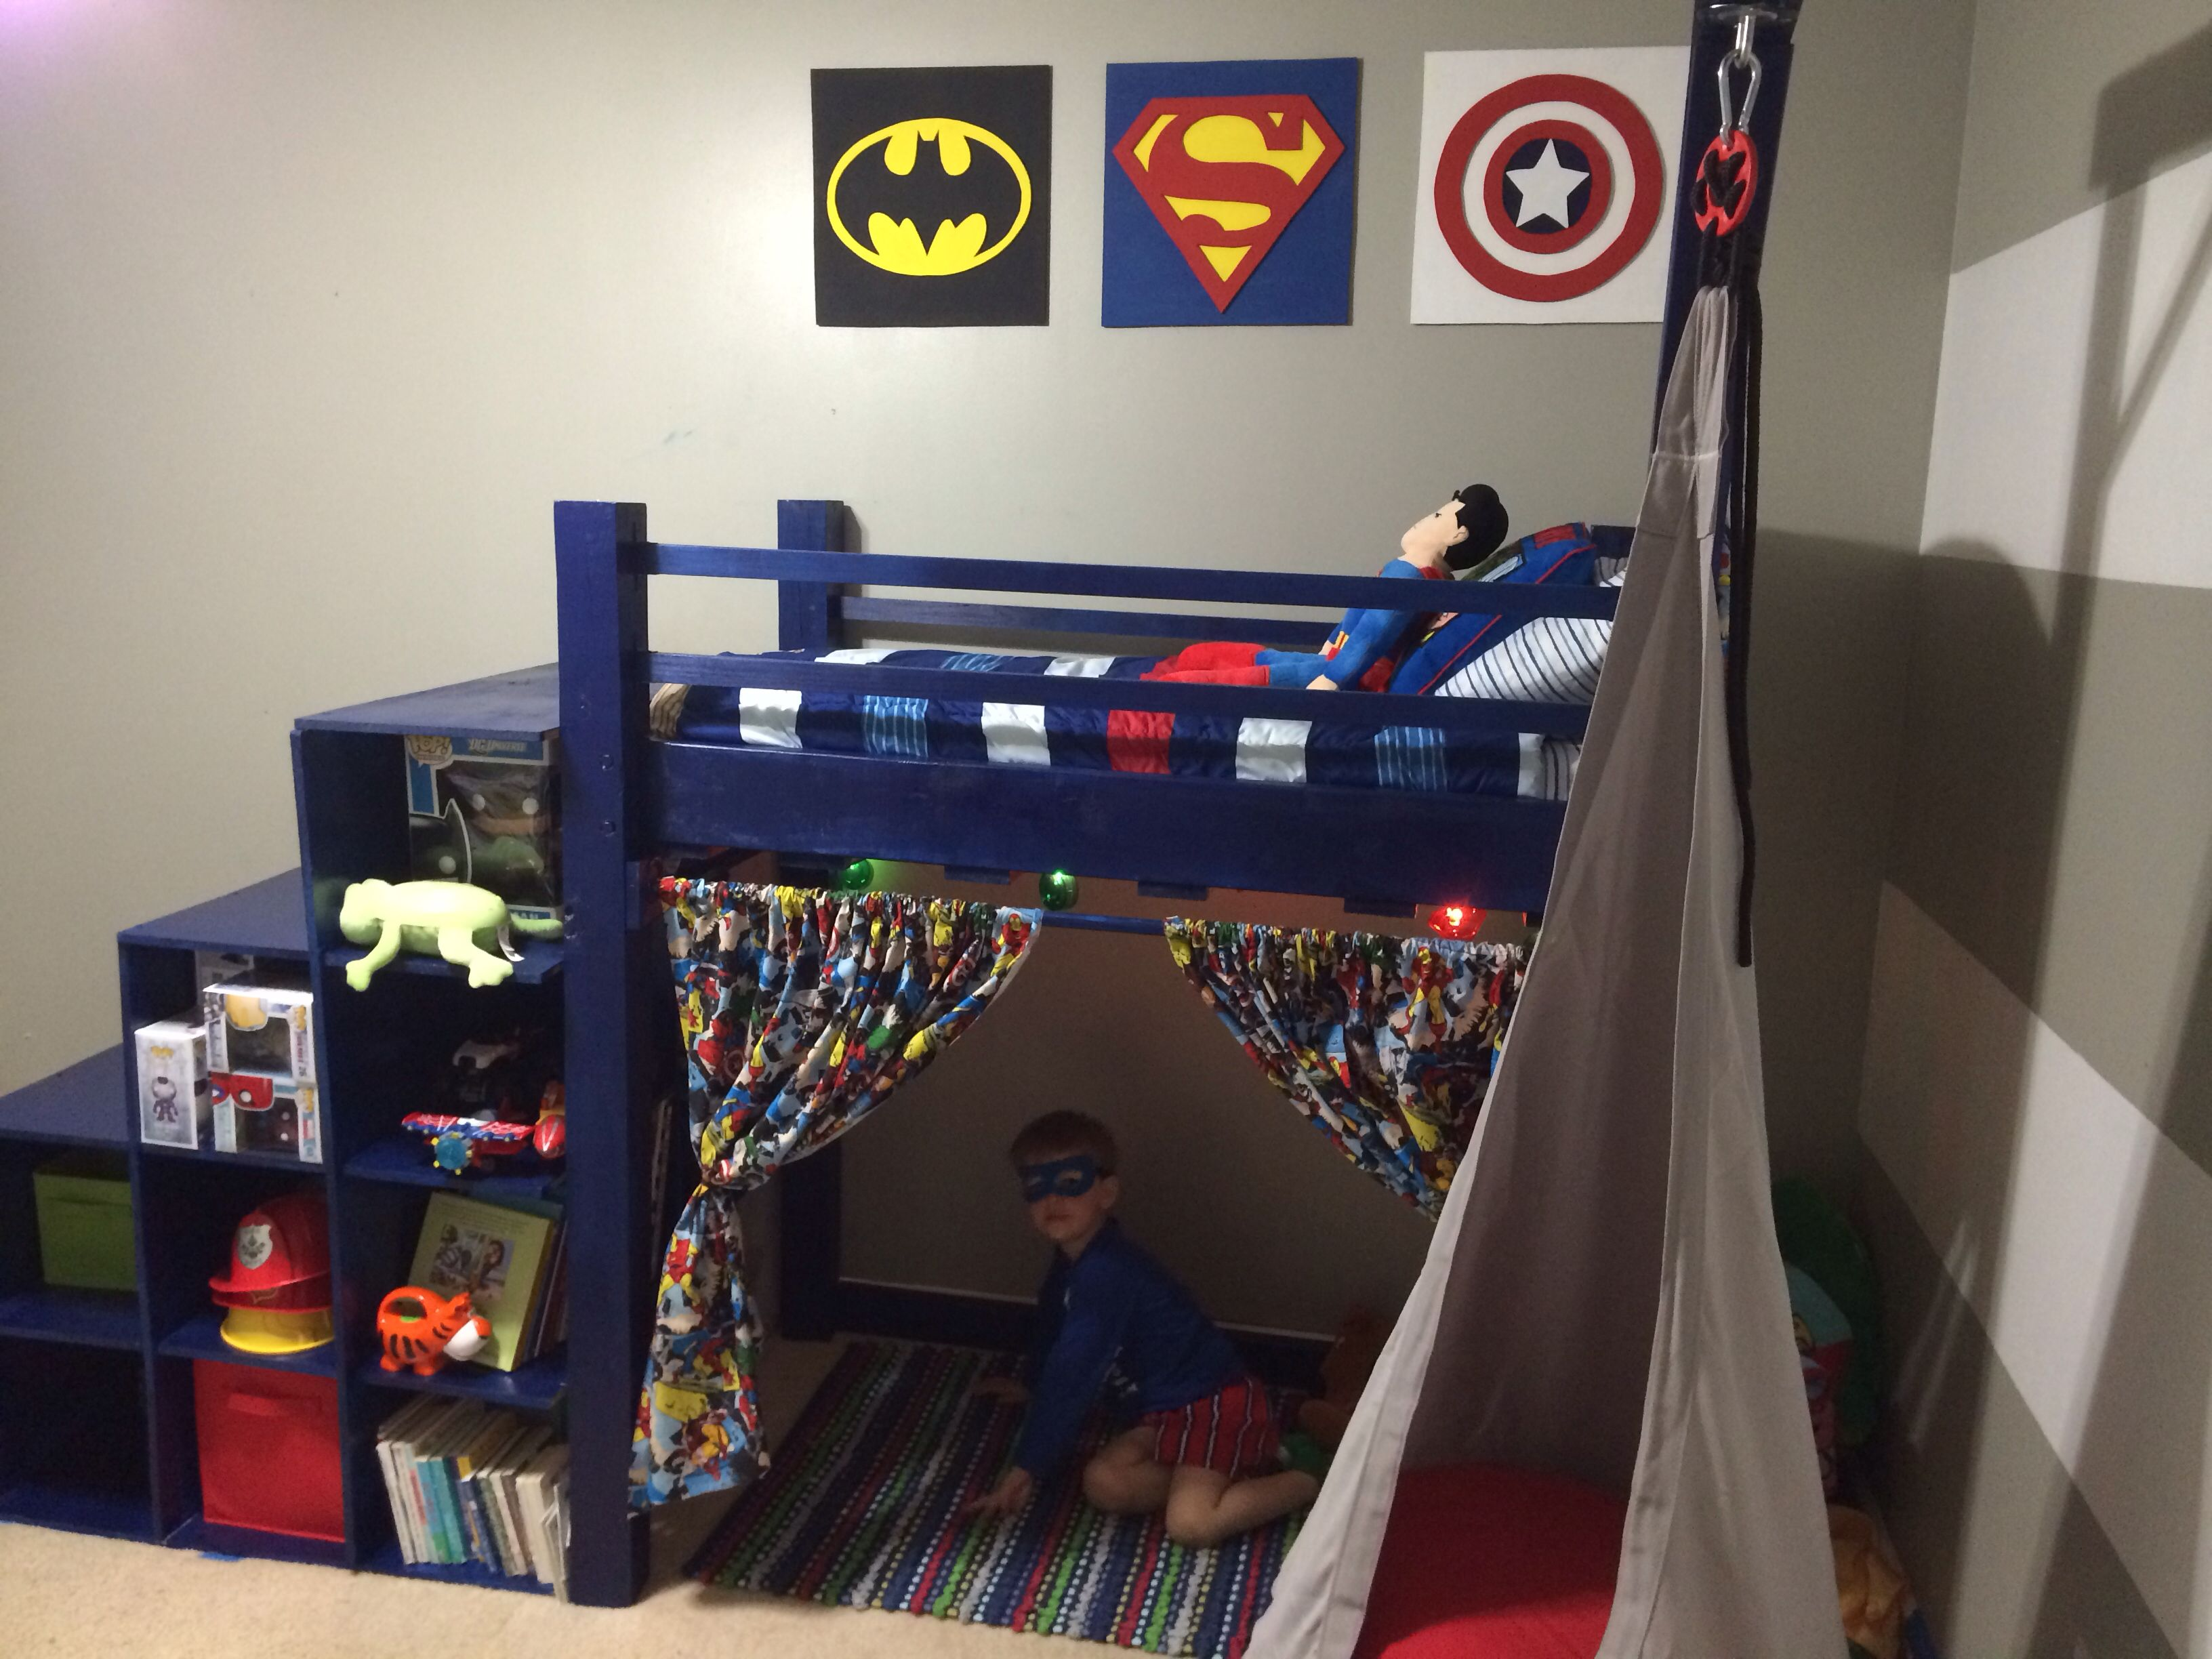 Loft bed curtains dorm - Best 20 Loft Bed Curtains Ideas On Pinterest Loft Bed Decorating Ideas Dorm Bunk Beds And Bedroom Chairs Ikea